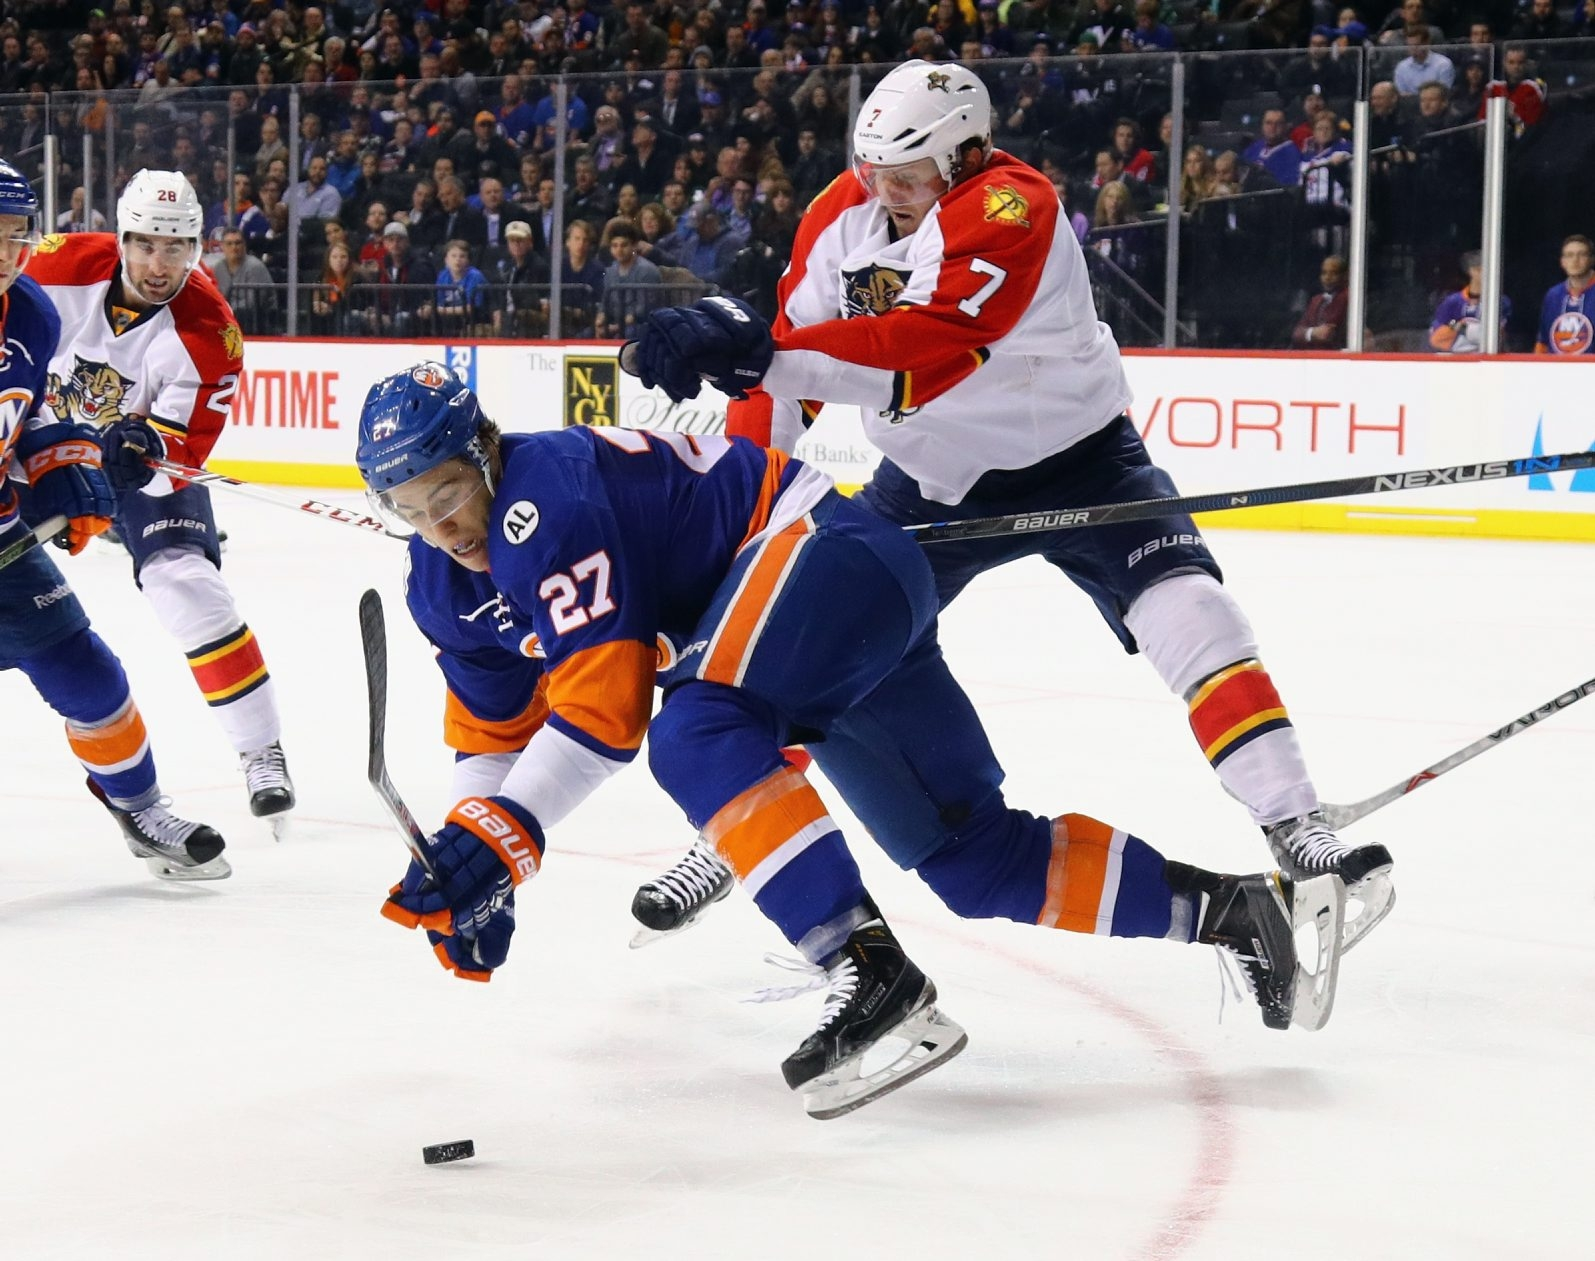 Dmitry Kulikov, delivering a check last season for the Florida Panthers, joined the Buffalo Sabres on the ice for the first time.